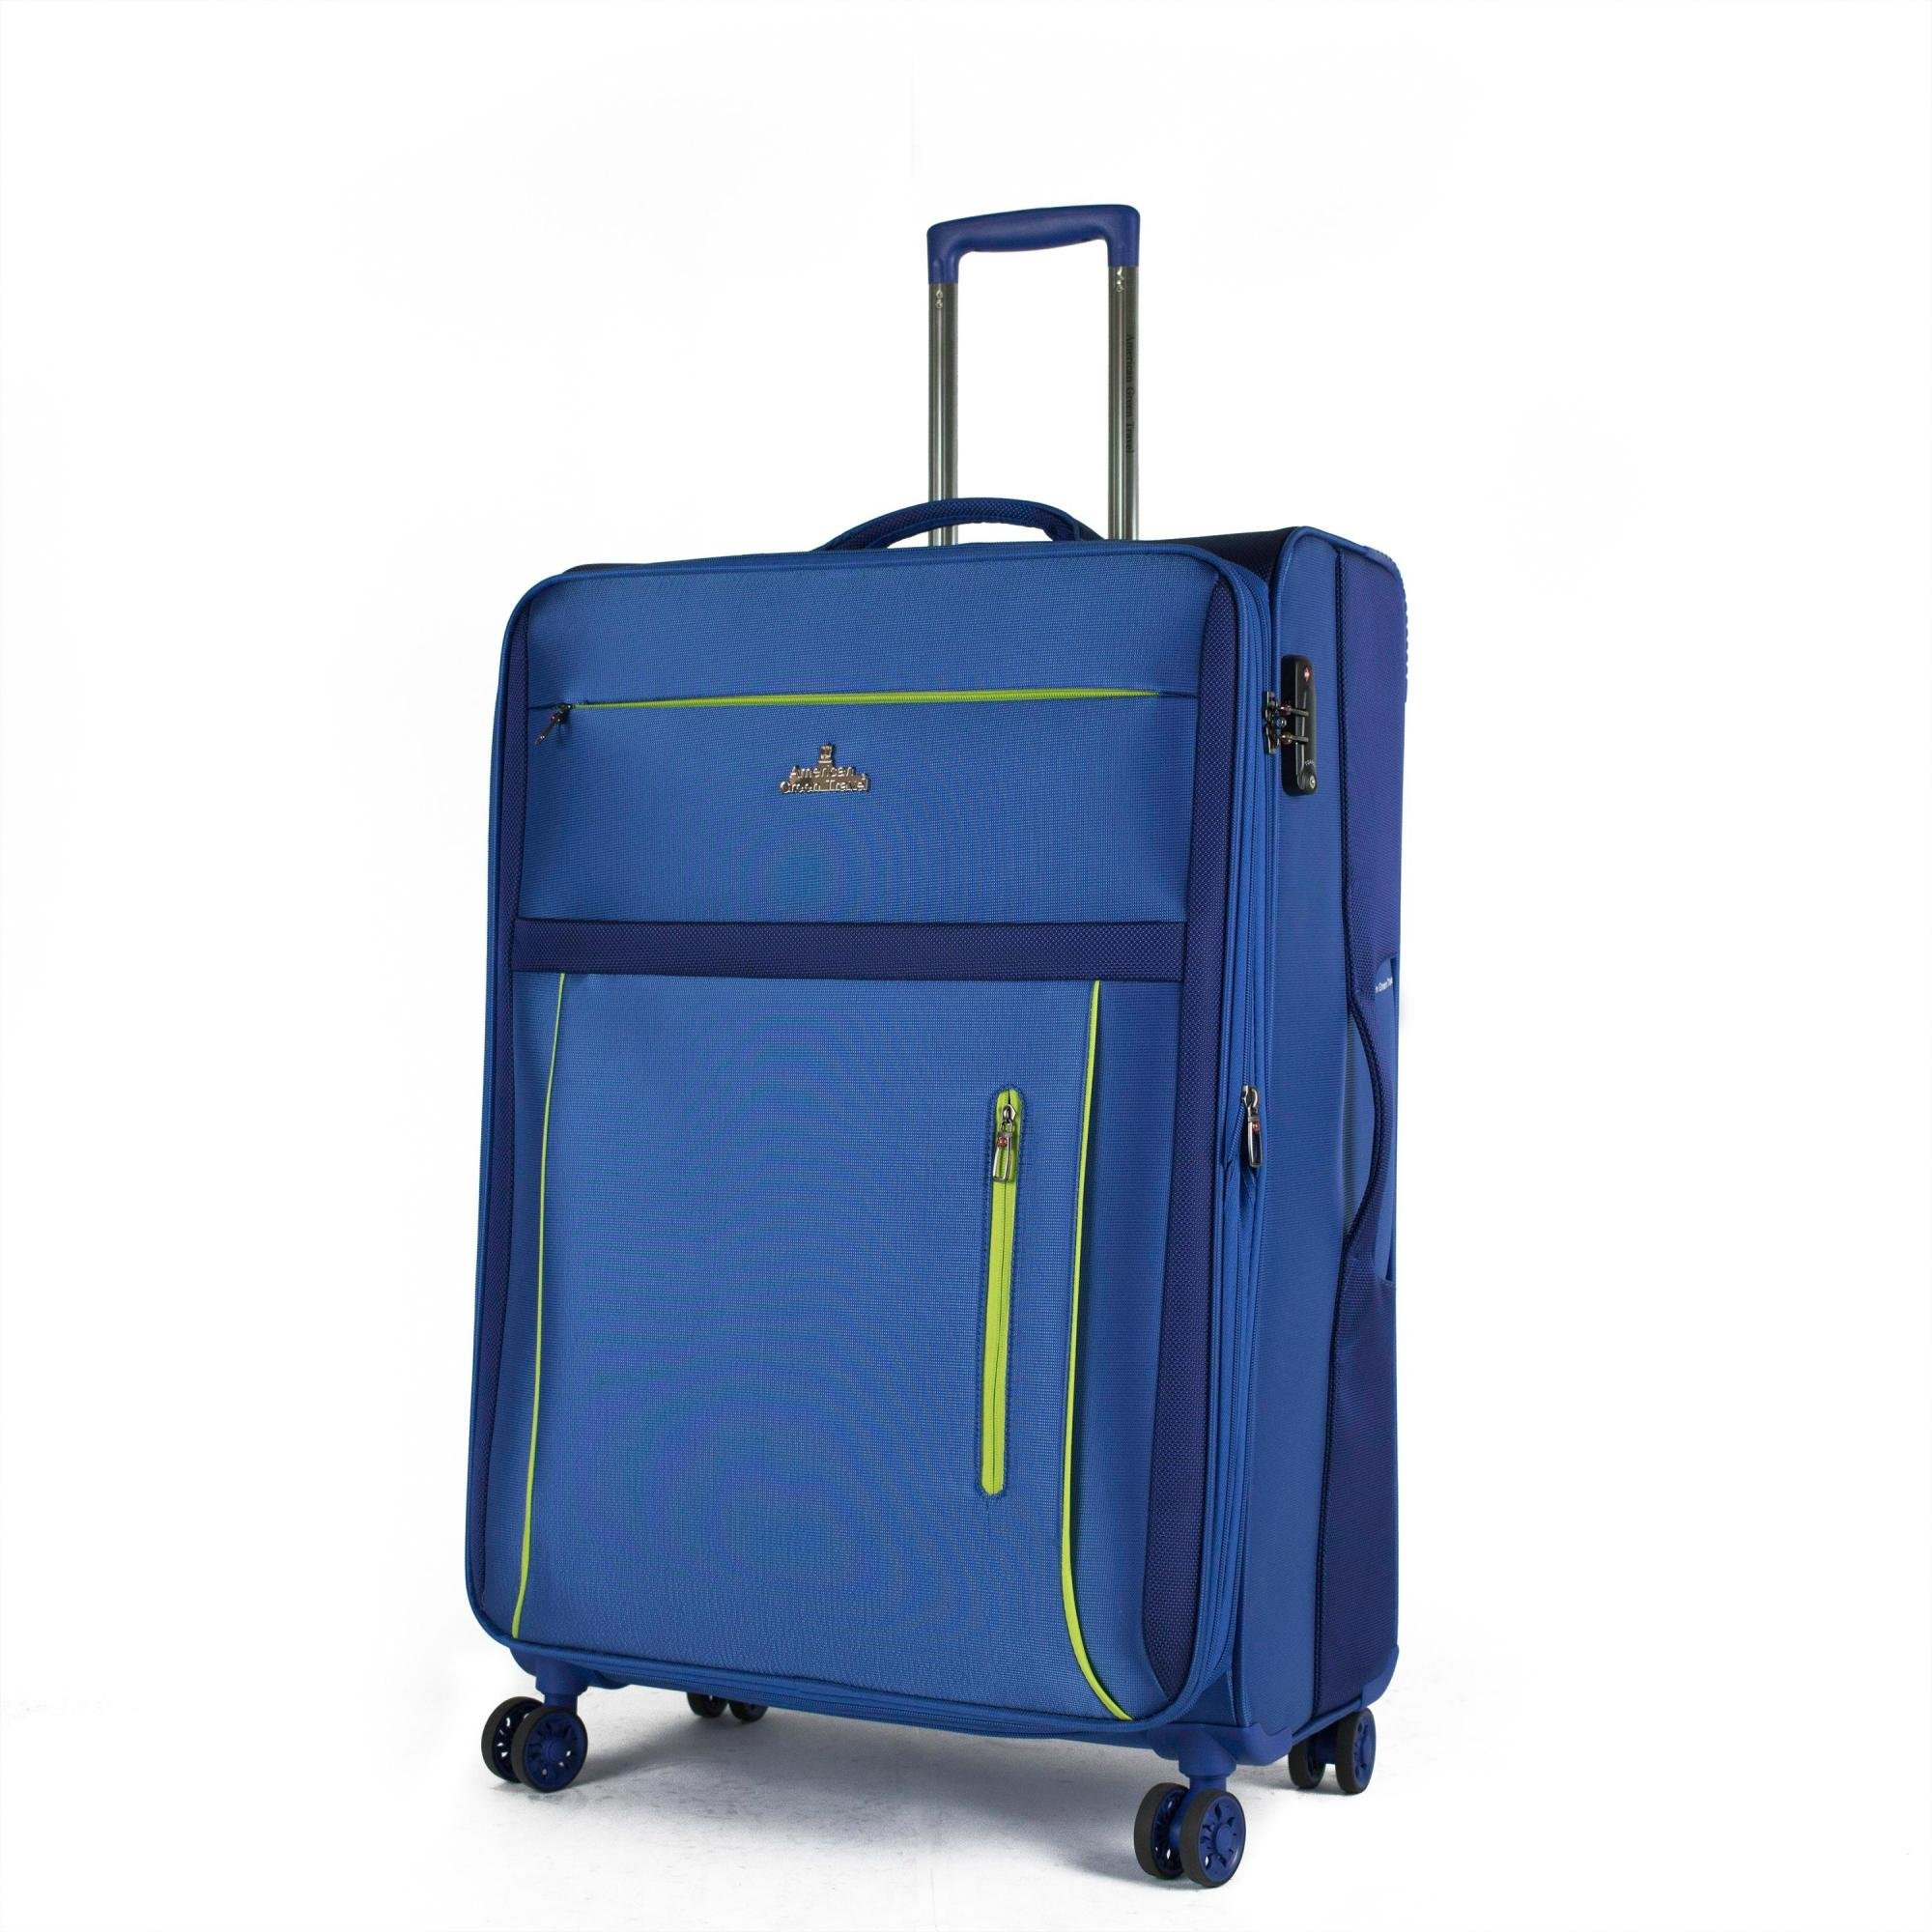 American Green Travel Soteria Luggage Set, Blue